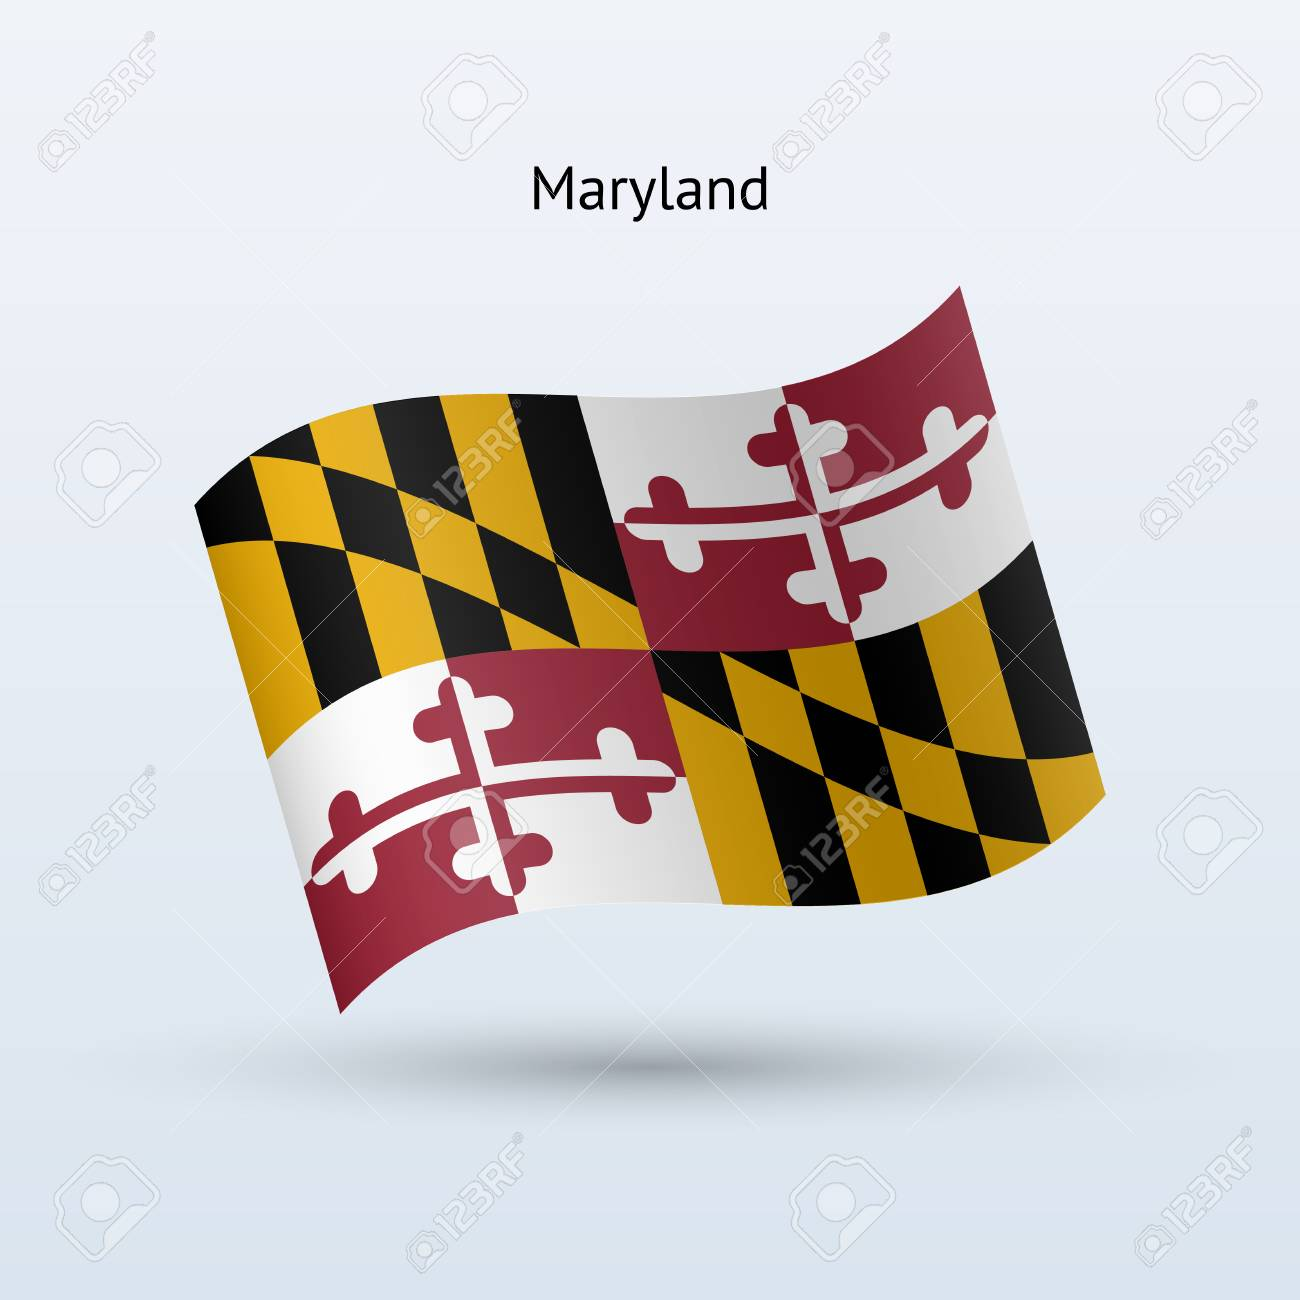 state of maryland flag waving form vector illustration royalty rh 123rf com waving maryland flag vector maryland flag vector free download